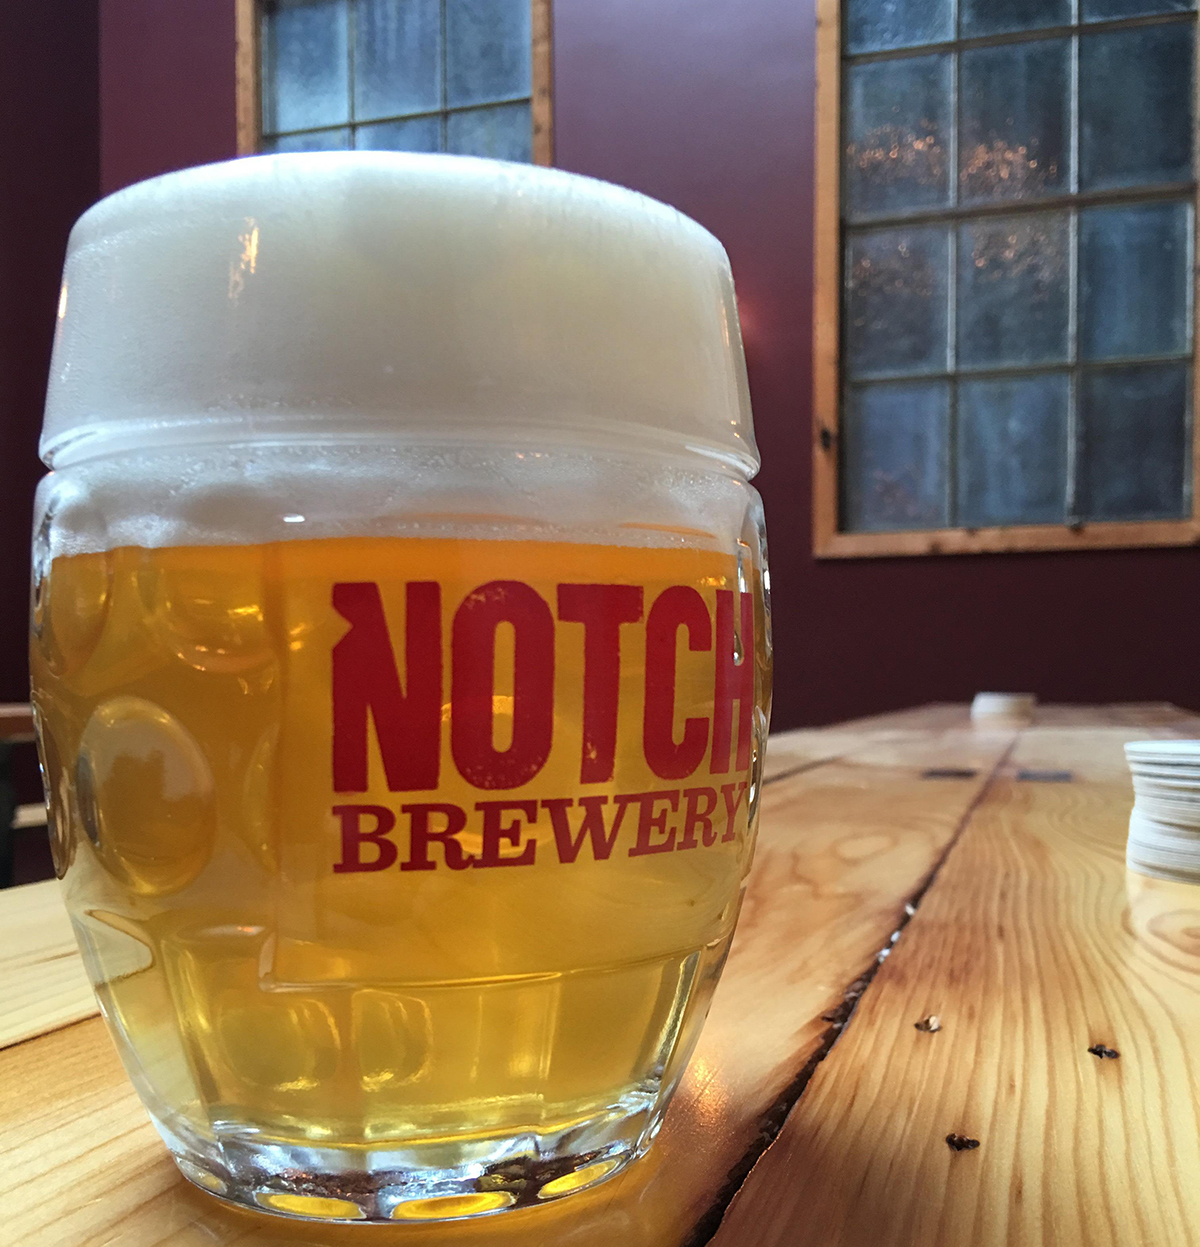 Loral by Notch Brewing